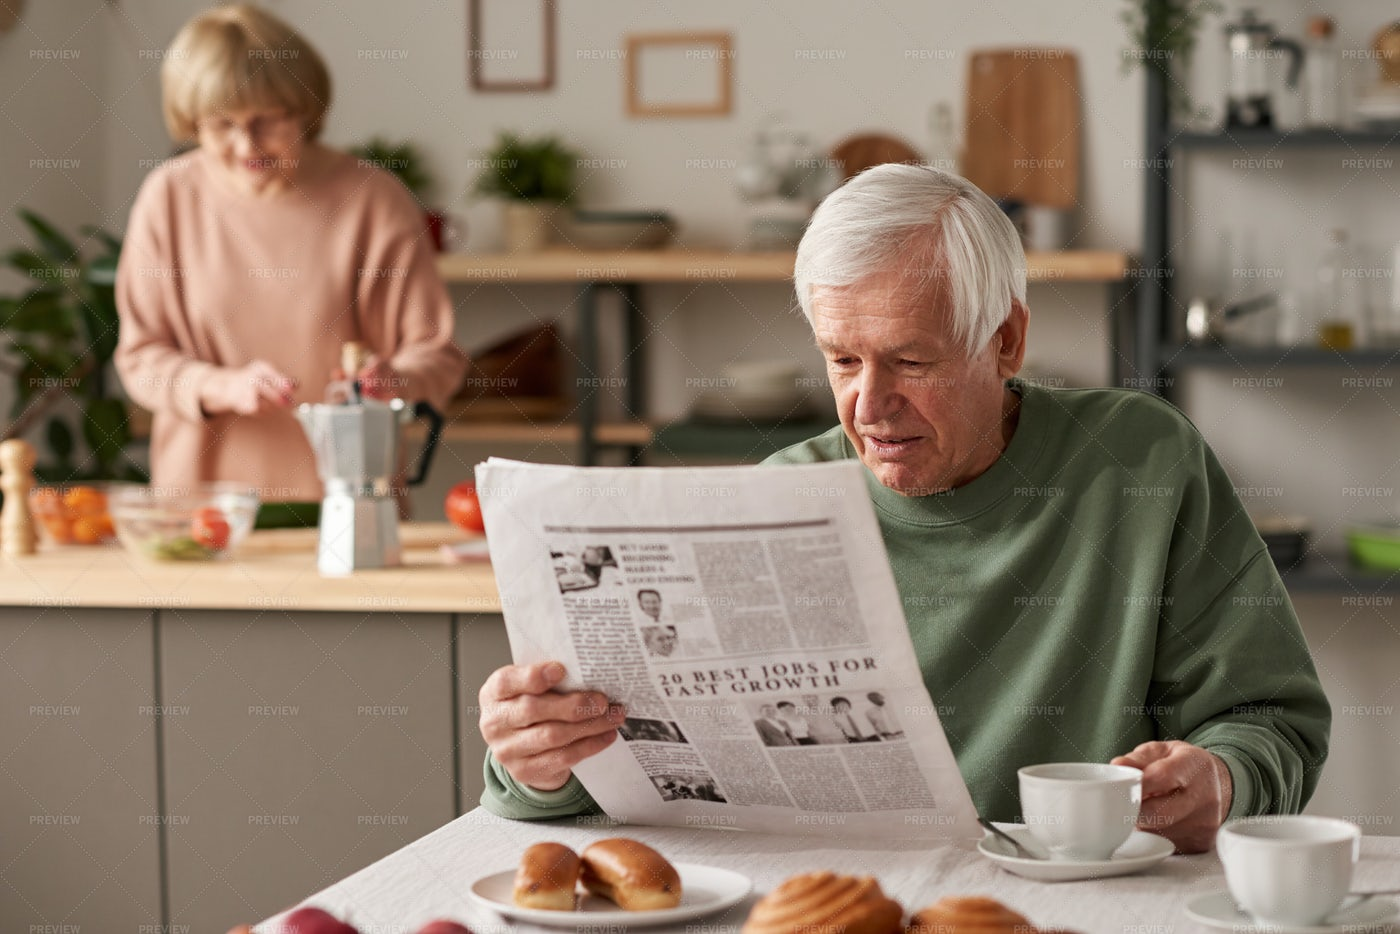 Reading Newspaper In The Morning: Stock Photos